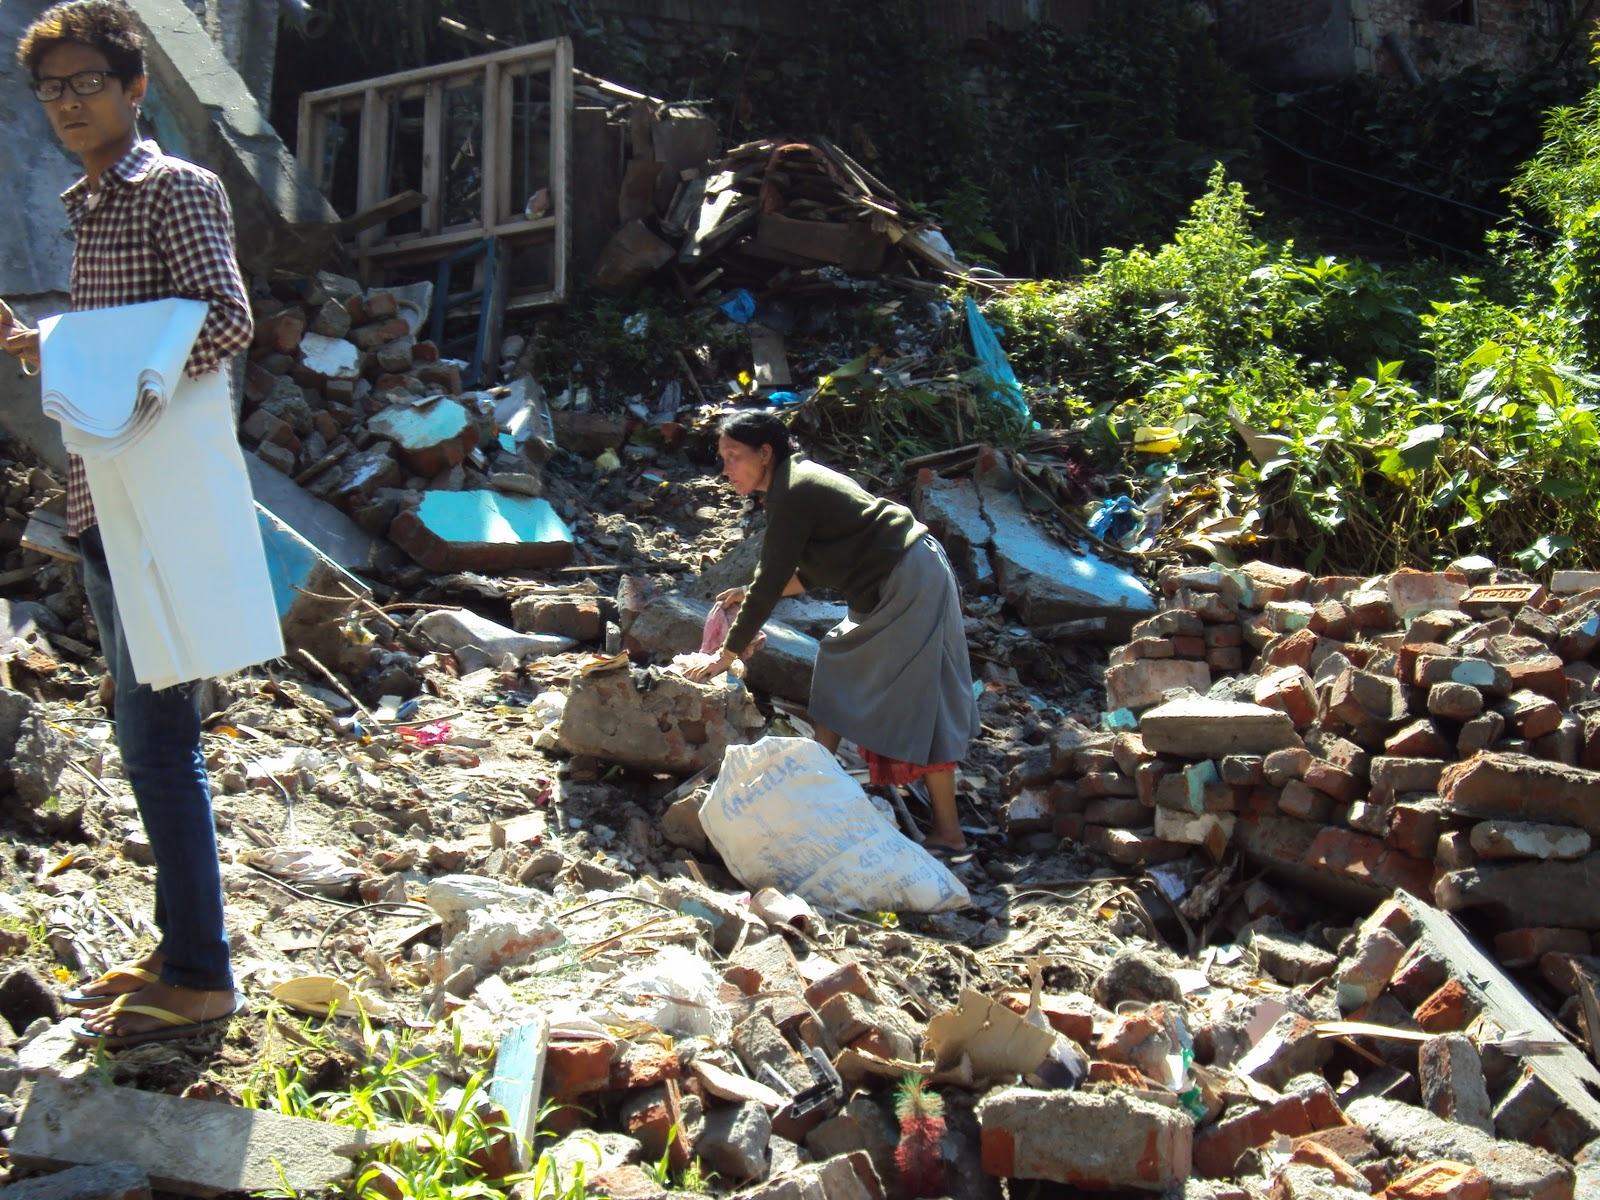 essay on 18th sep sikkim earthquake Recently, two earthquakes (m w = 53 on february 14, 2006, and m w = 69 on september 18, 2011) struck the mountainous region of sikkim, one of the most seismically active regions in india the 2006 event, though of lesser magnitude, clearly showed the high seismic vulnerability of different structures in sikkim, especially in the state capital.